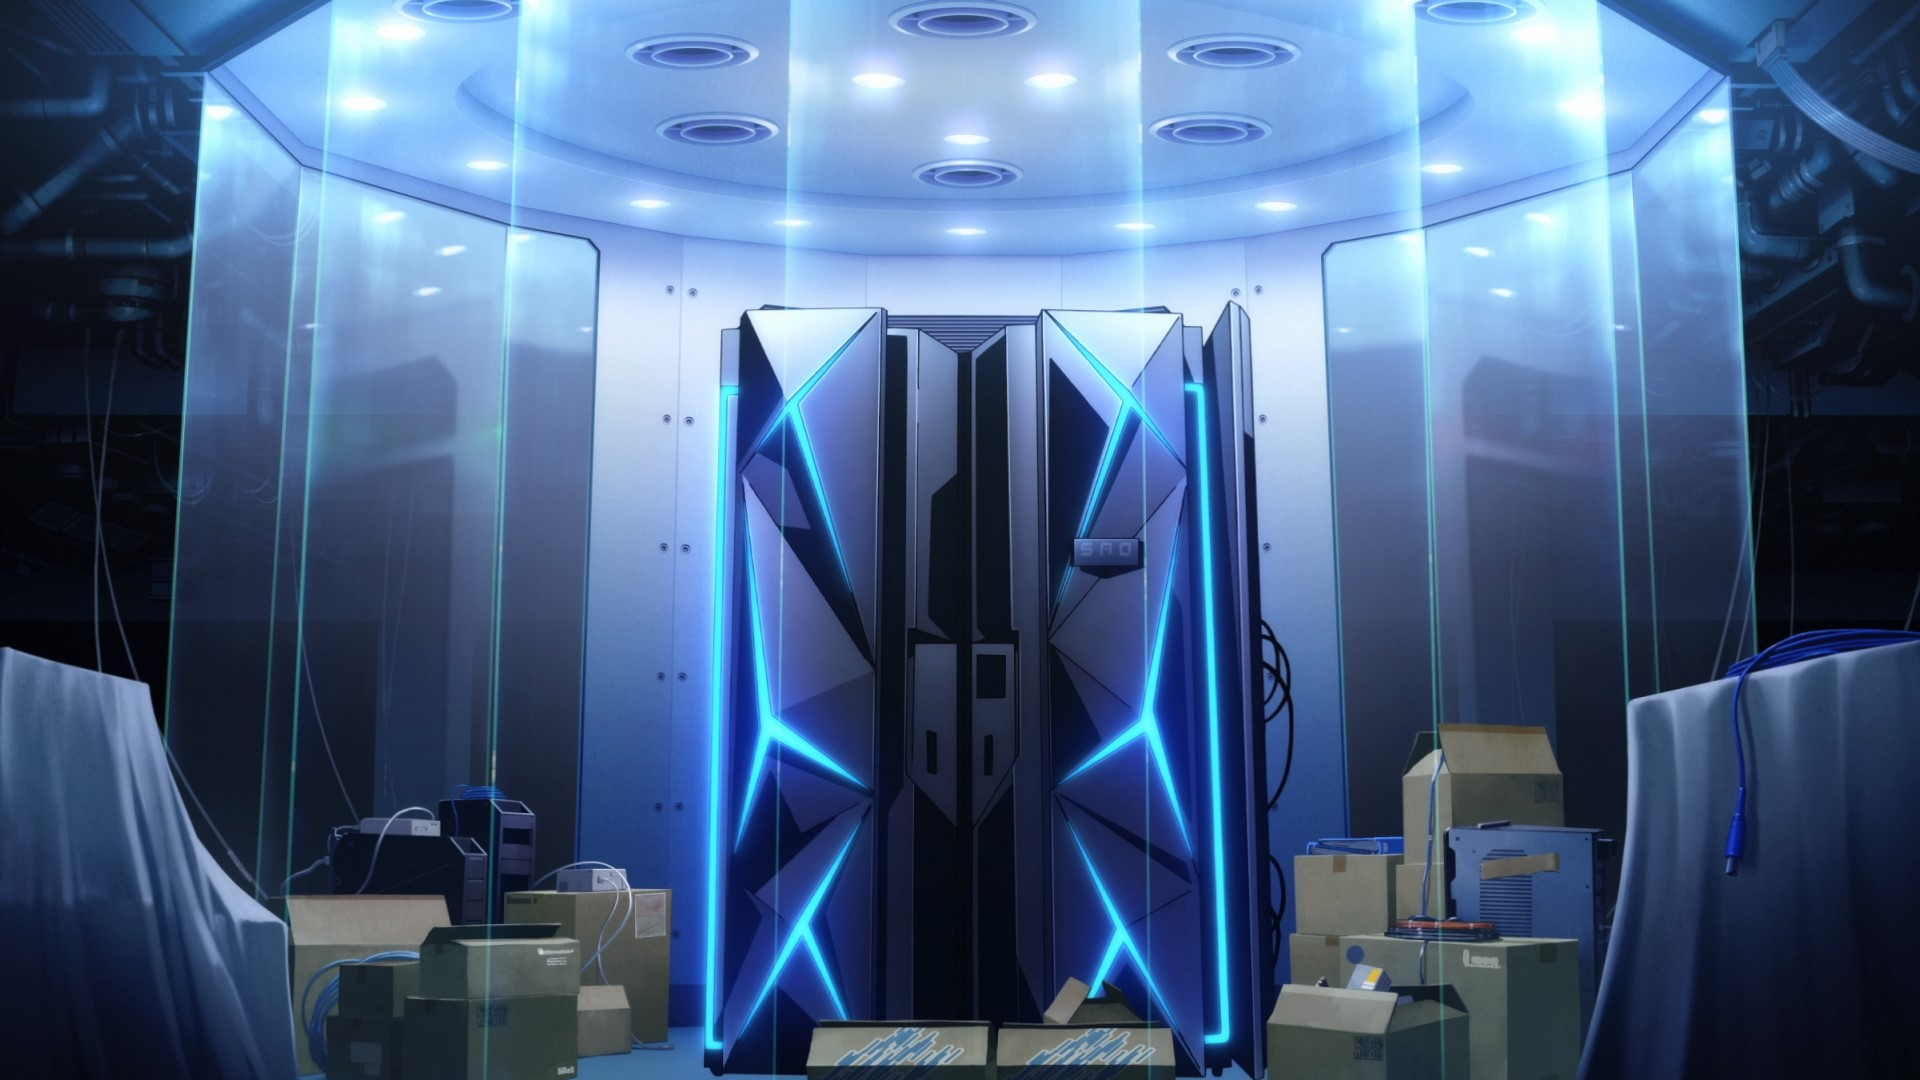 Making ibm magic with sword art online the movie ibm it server from sword art online the movie sword art online server gumiabroncs Choice Image